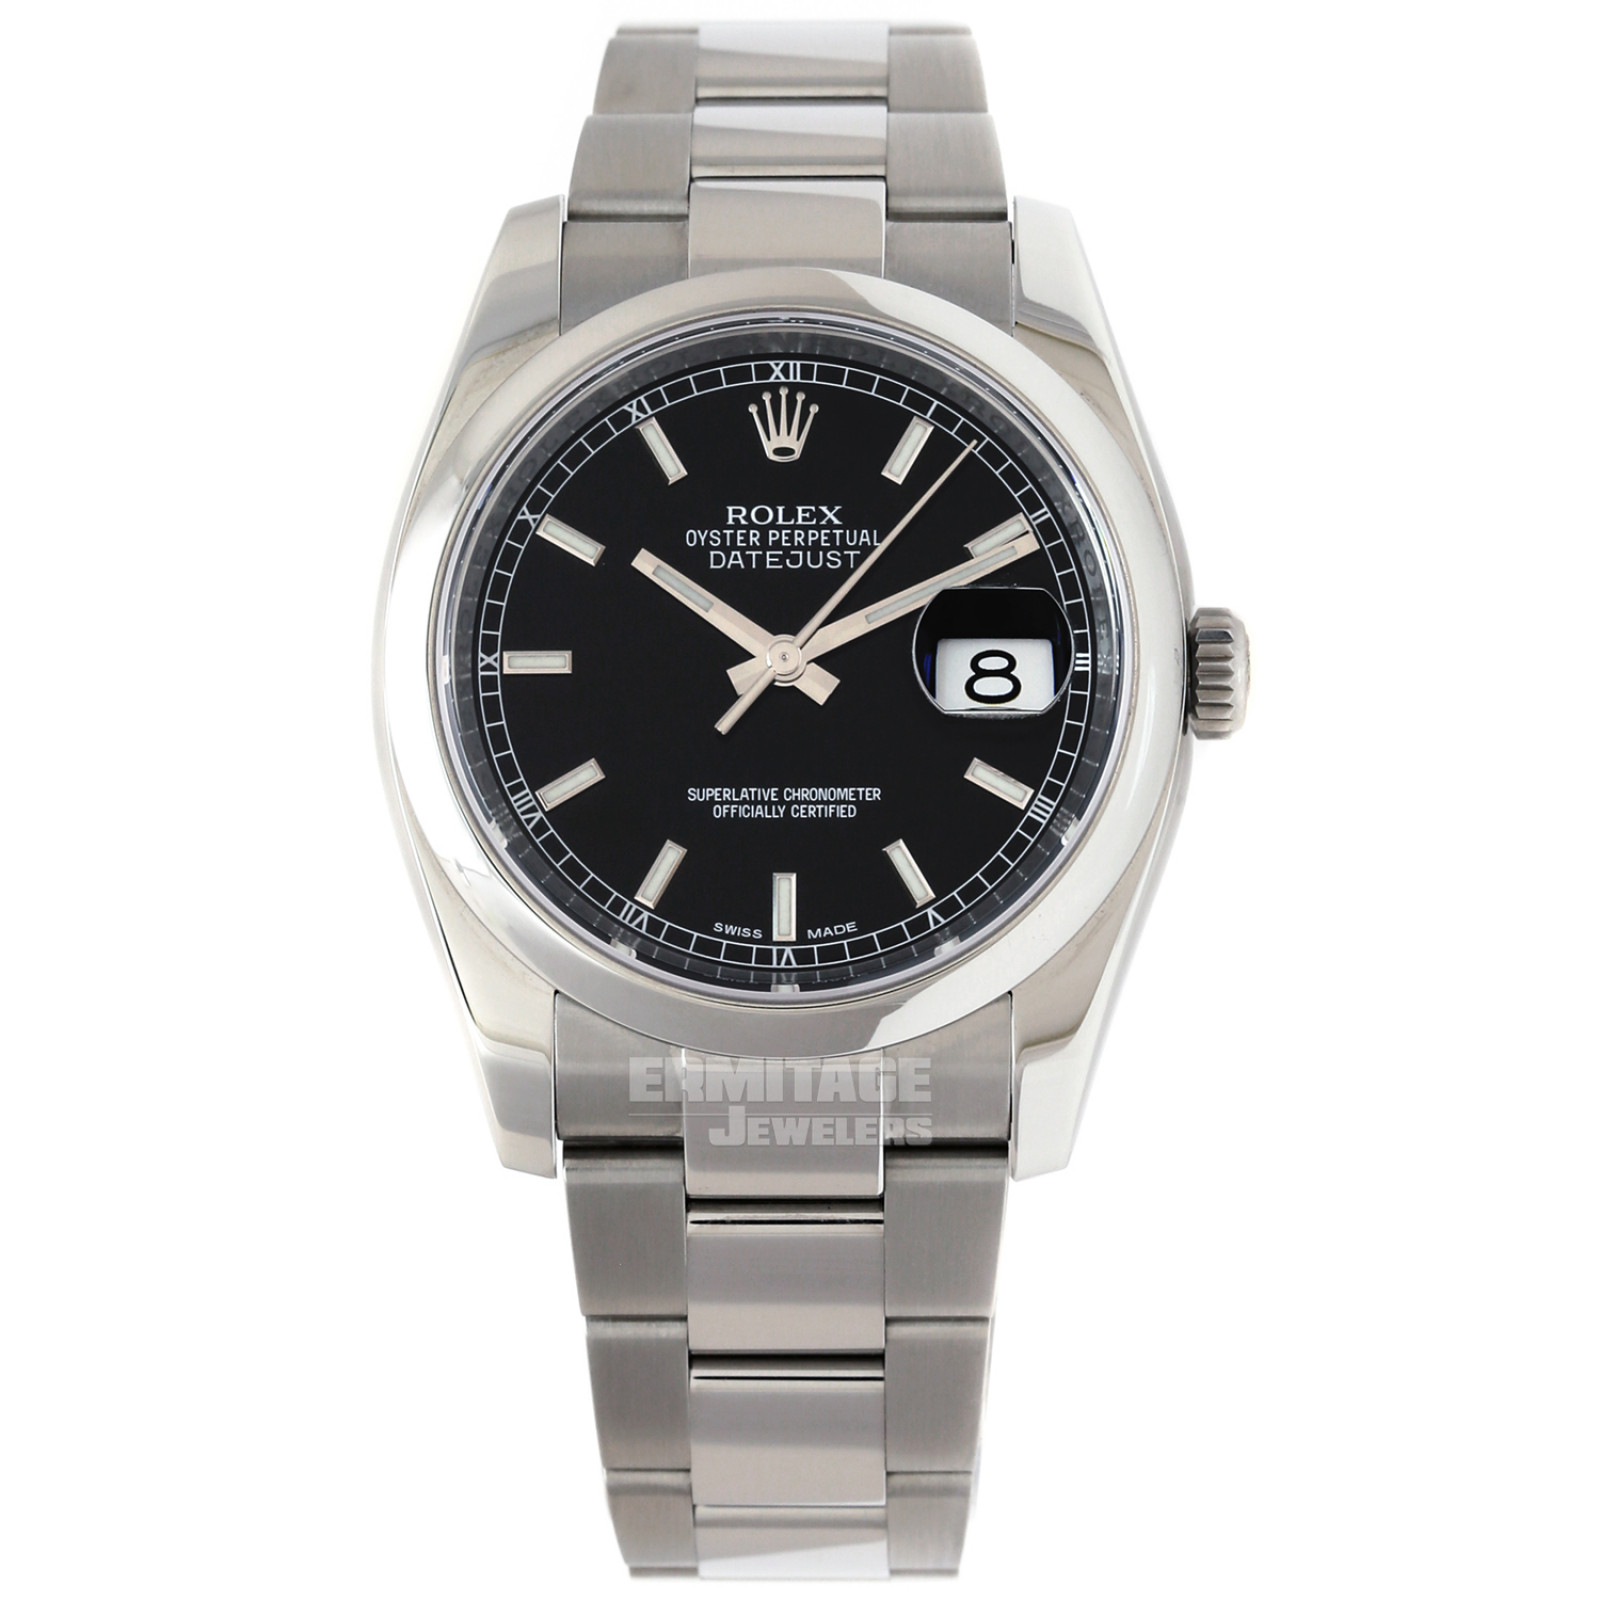 Rolex Datejust 116200 with Black Dial